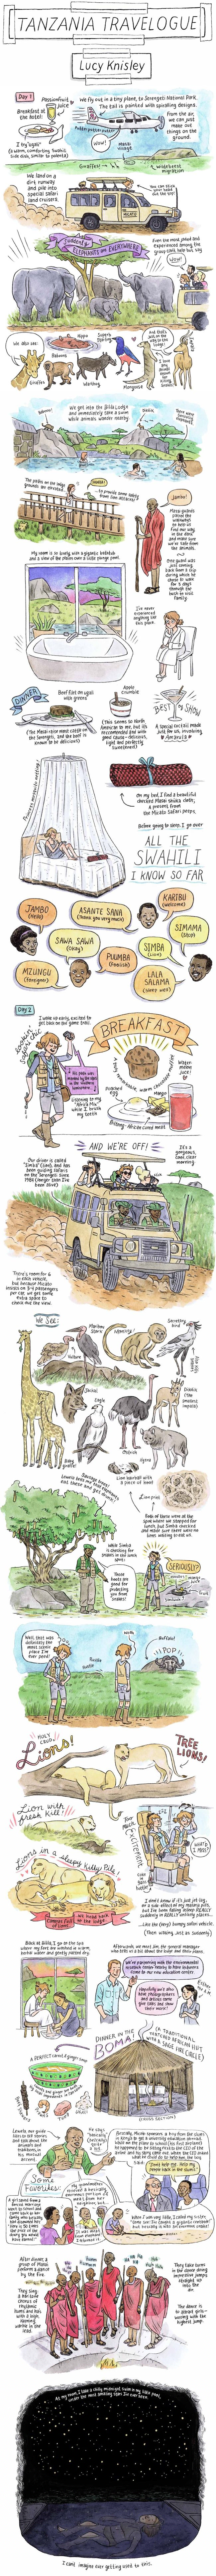 "Cartoonist Lucy Knisely shares part of the story of a recent trip through Qatar and Tanzania, which involves lion sightings, midnight swims, and many exclamations of ""wow""."